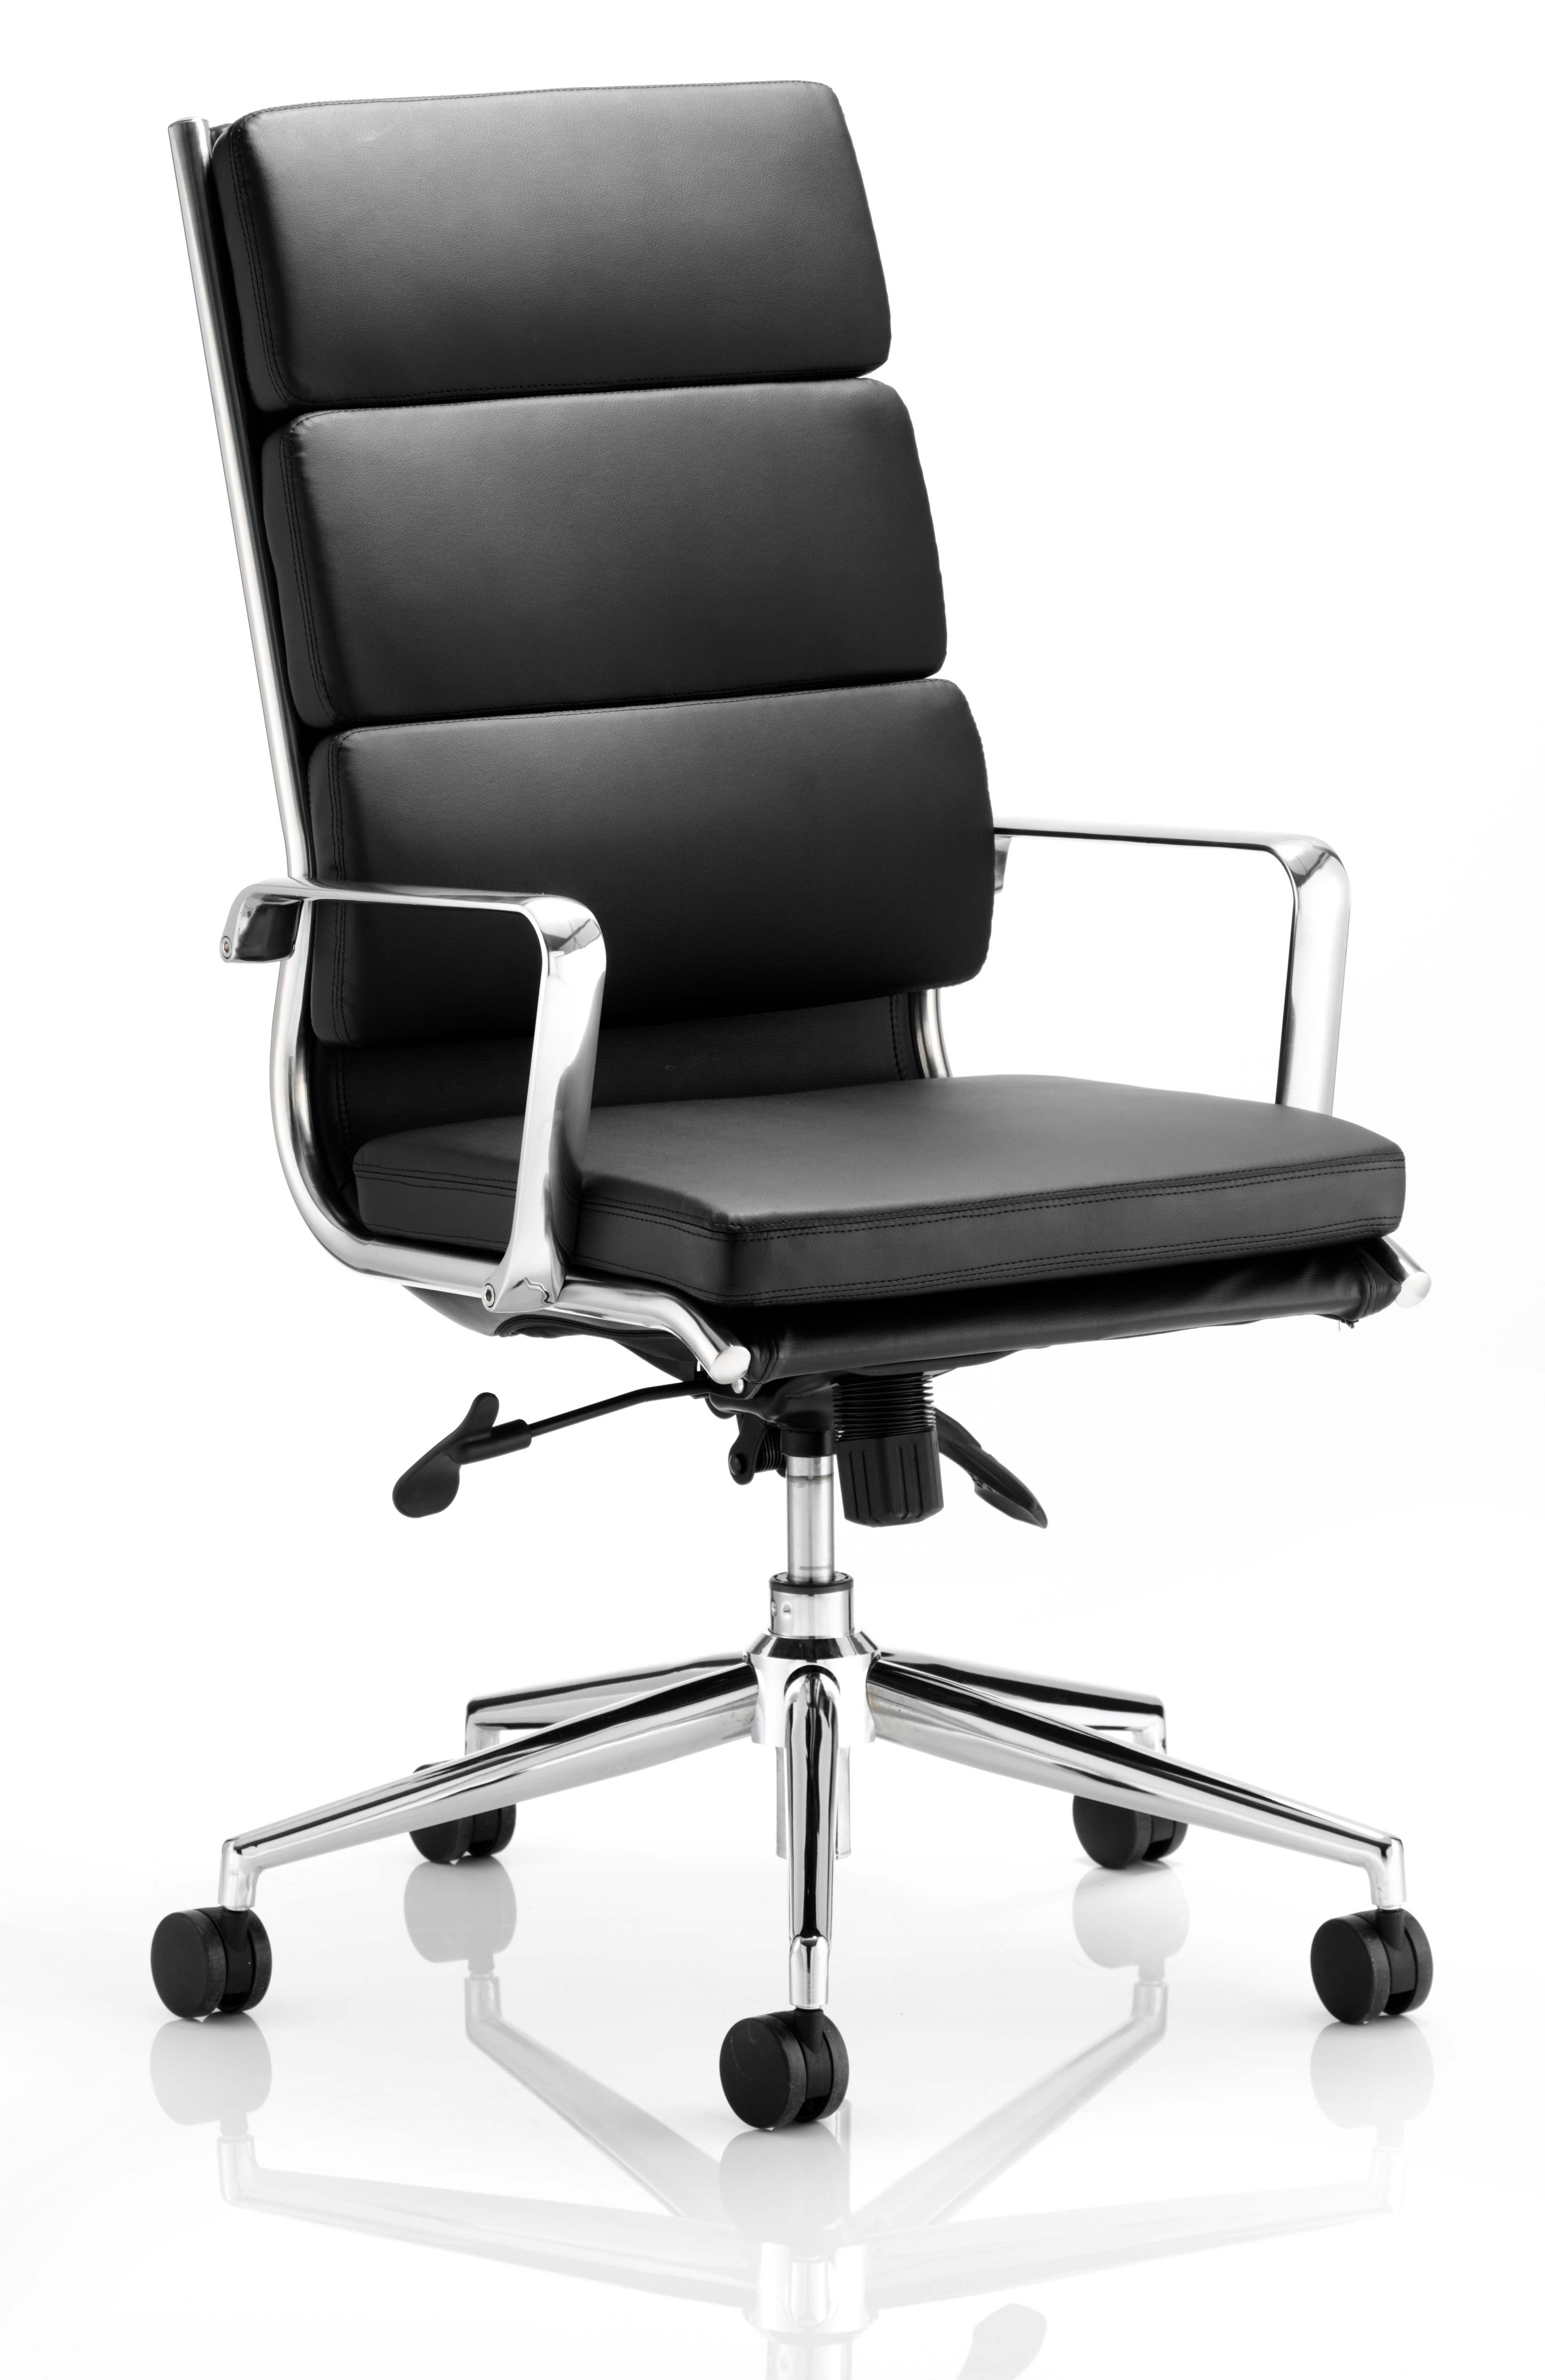 Executive Chairs Savoy Executive High Back Chair Black Soft Bonded Leather EX000067